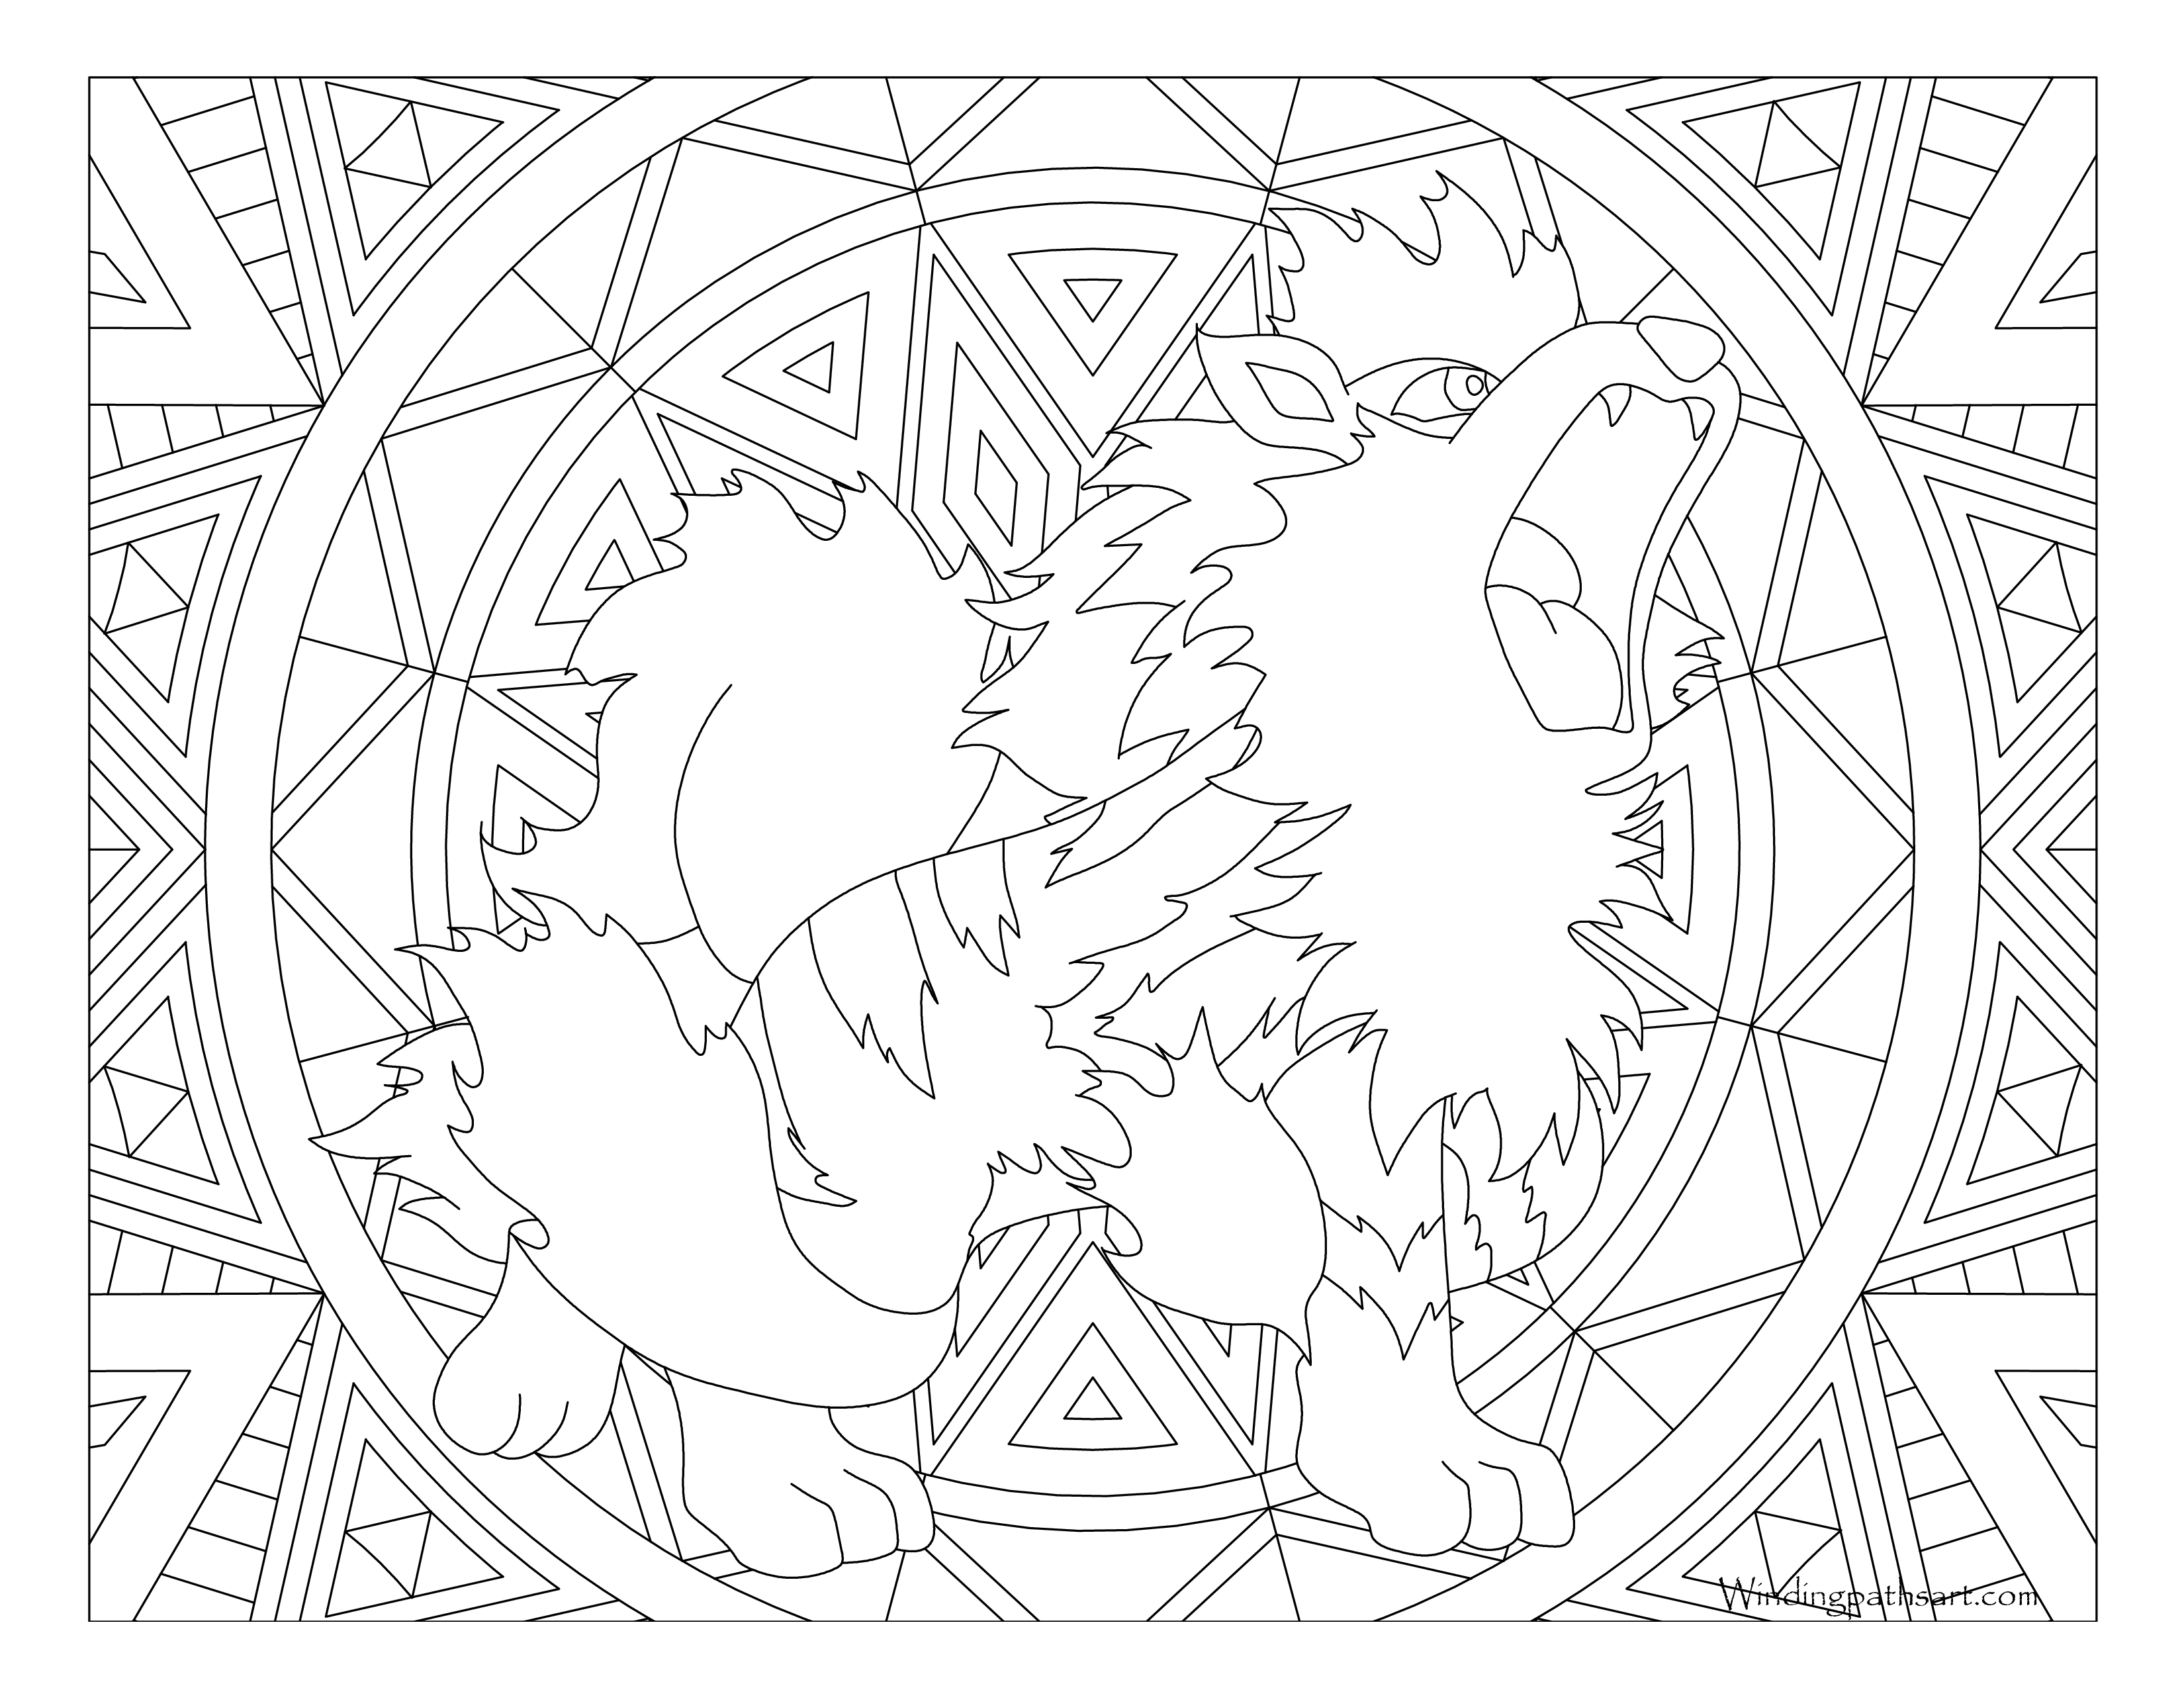 Growlithe drawing transparent. Arcanine lineart coloring